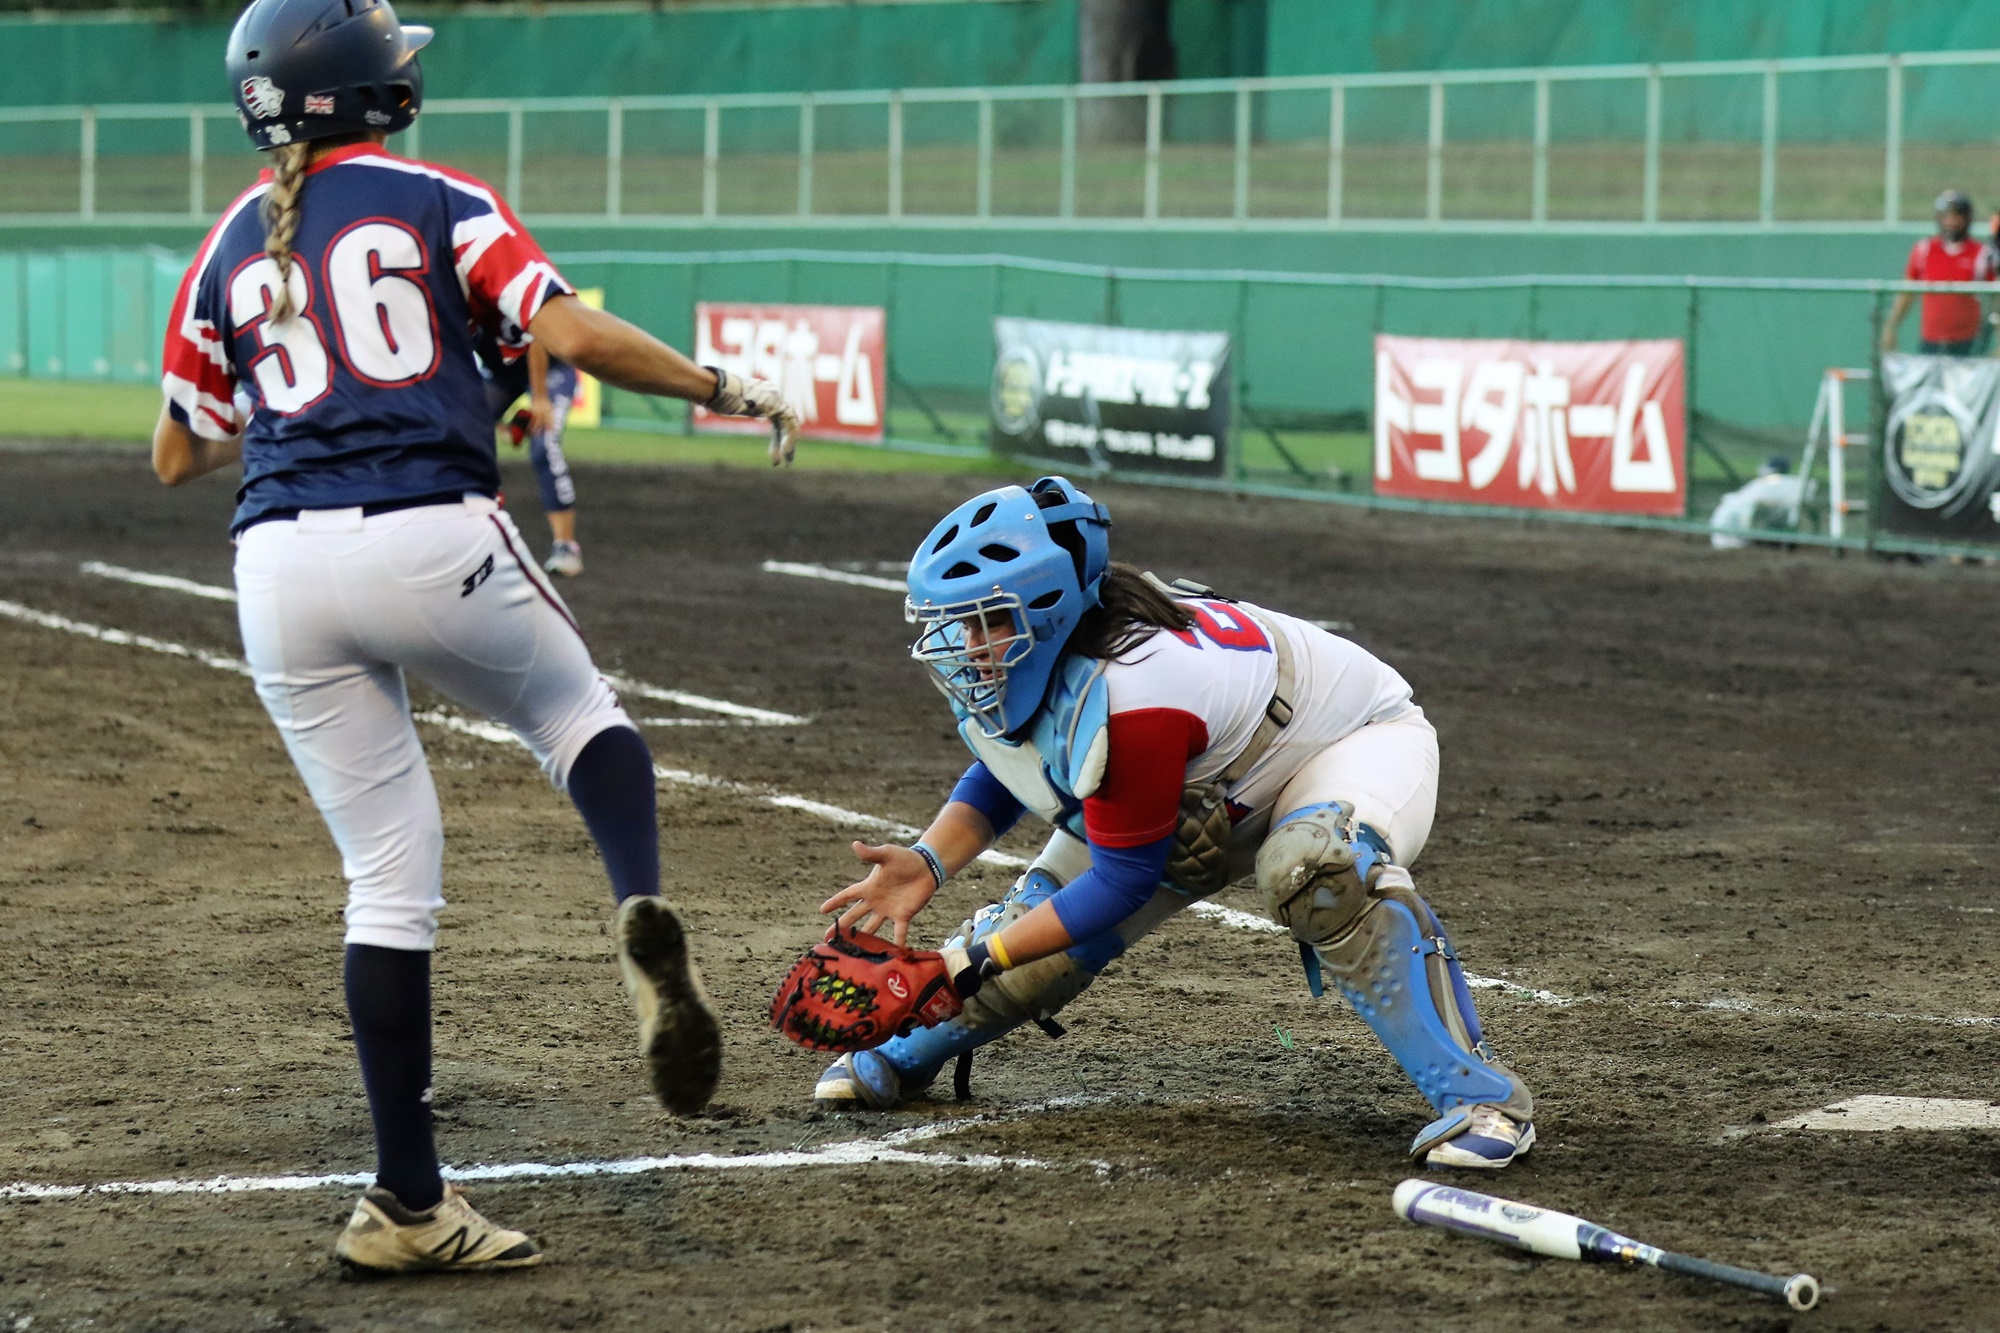 Kendyl Scott of Great Britain knew that the ball got to Venezuela's catcher Cristina Rodriguez way before her